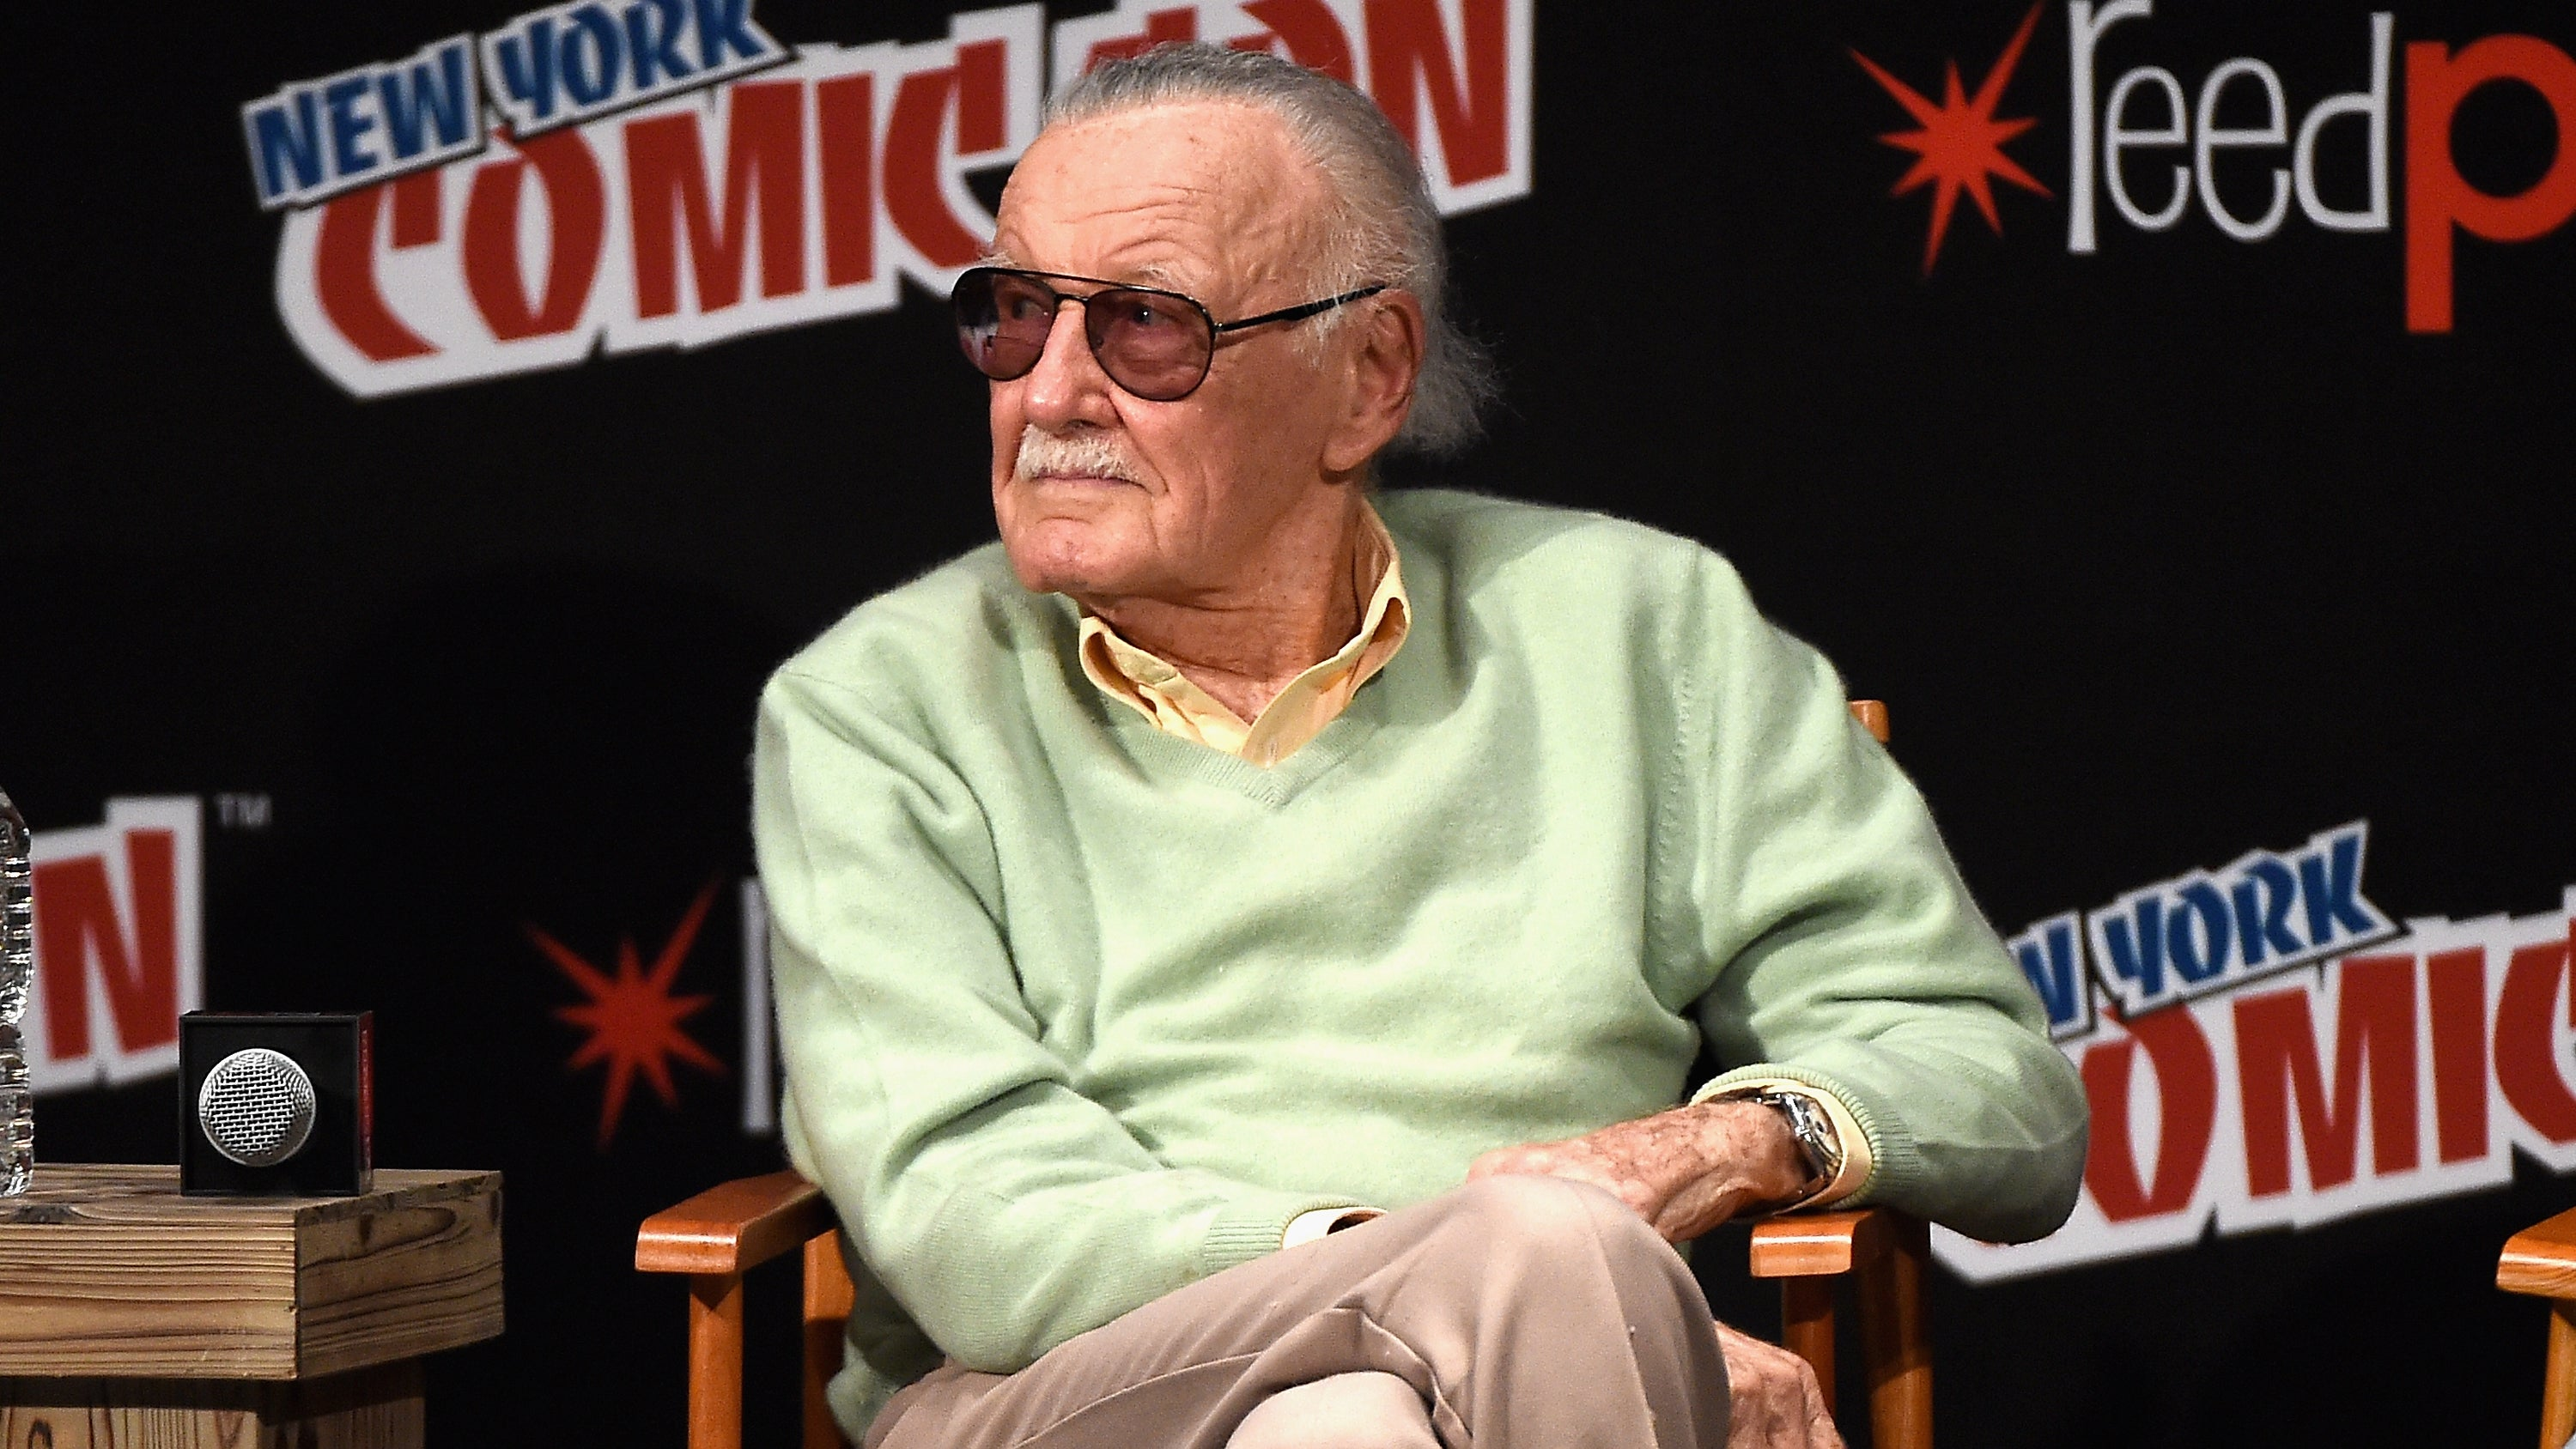 Stan Lee's Legal Team Responds To Accusations Of Sexual Harassment